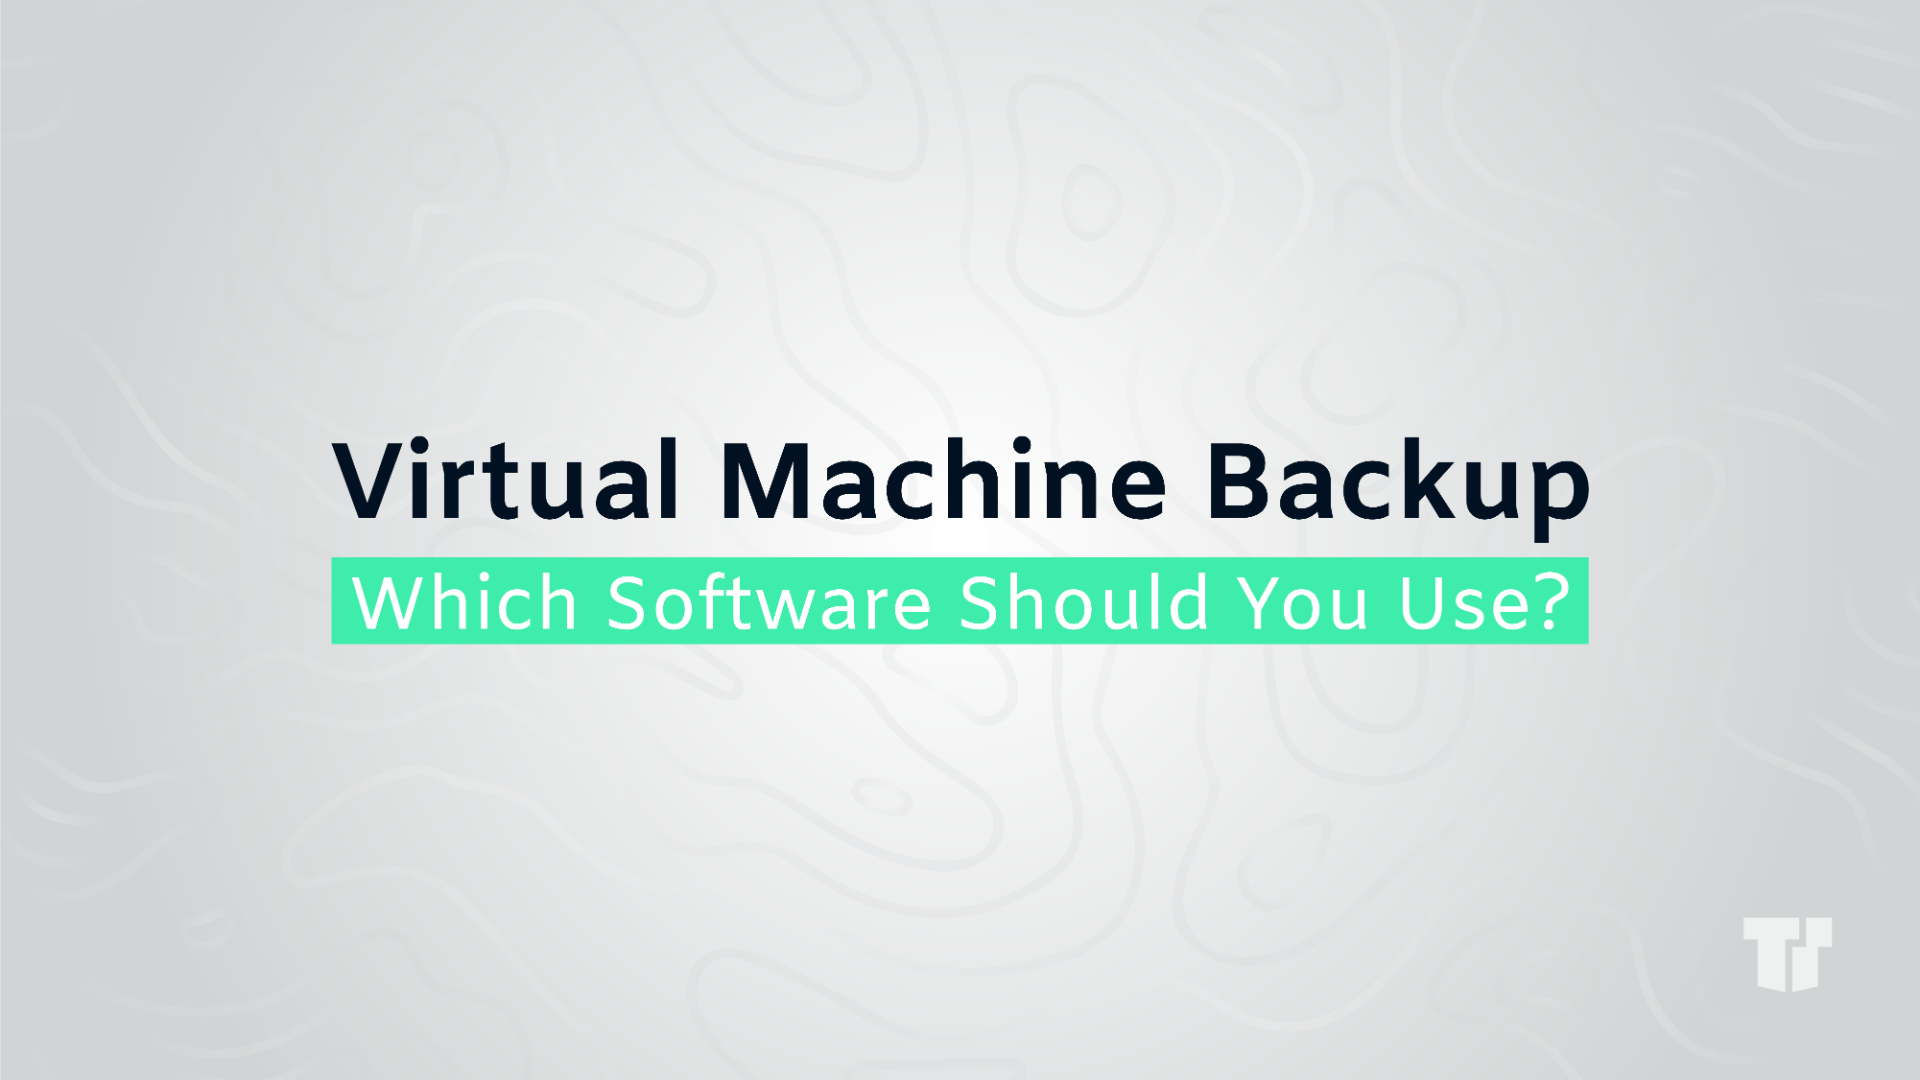 Virtual Machine Backup: Which Software Should You Use? cover image